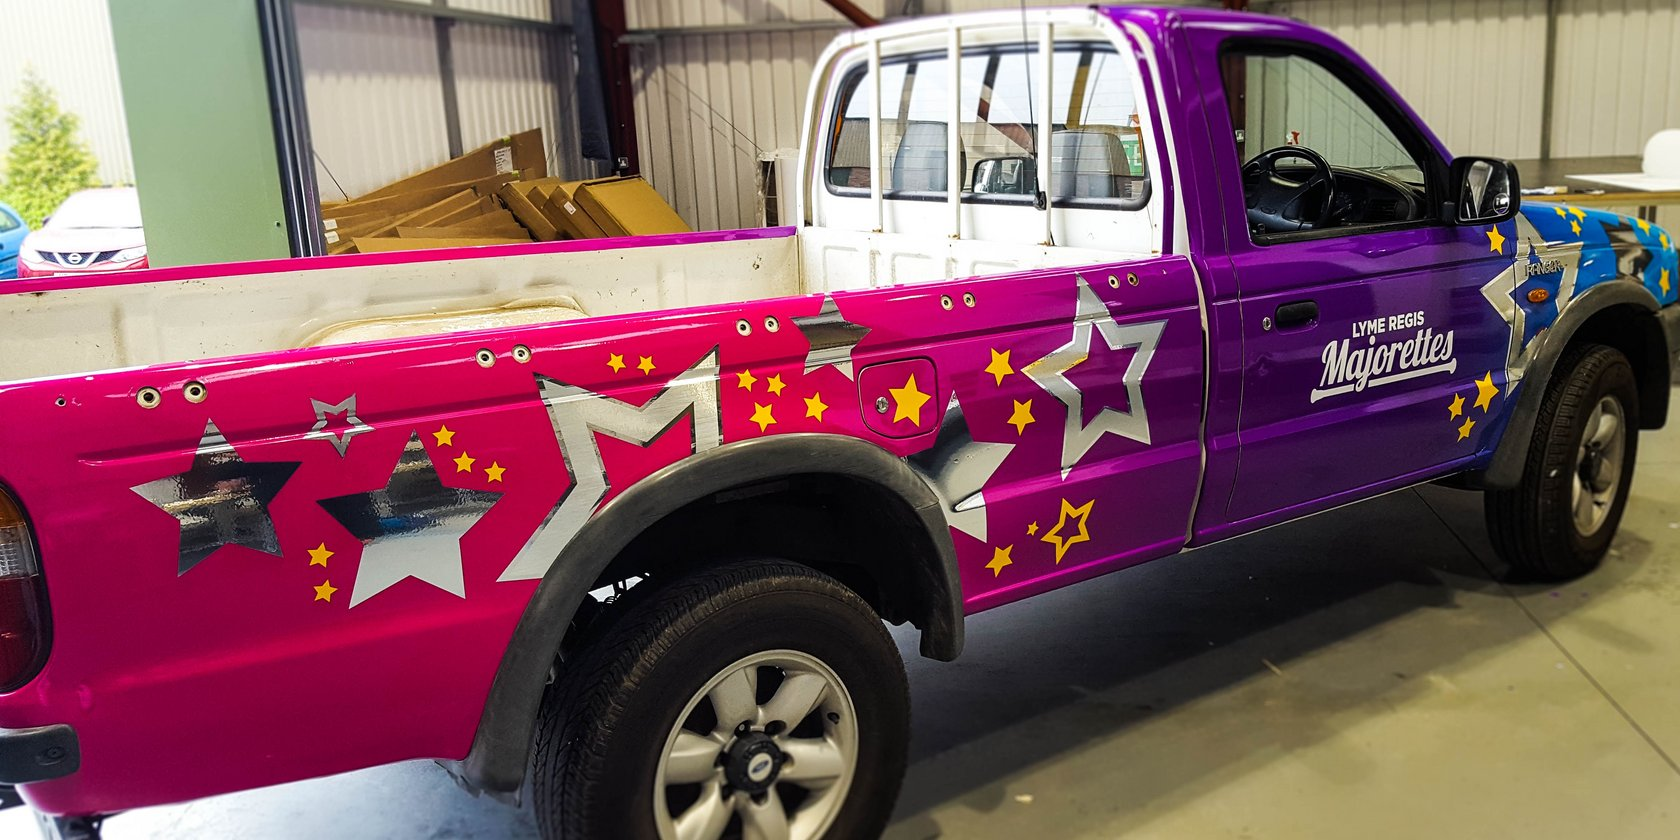 Vehicle Wrapping for Lyme Regis Majorettes